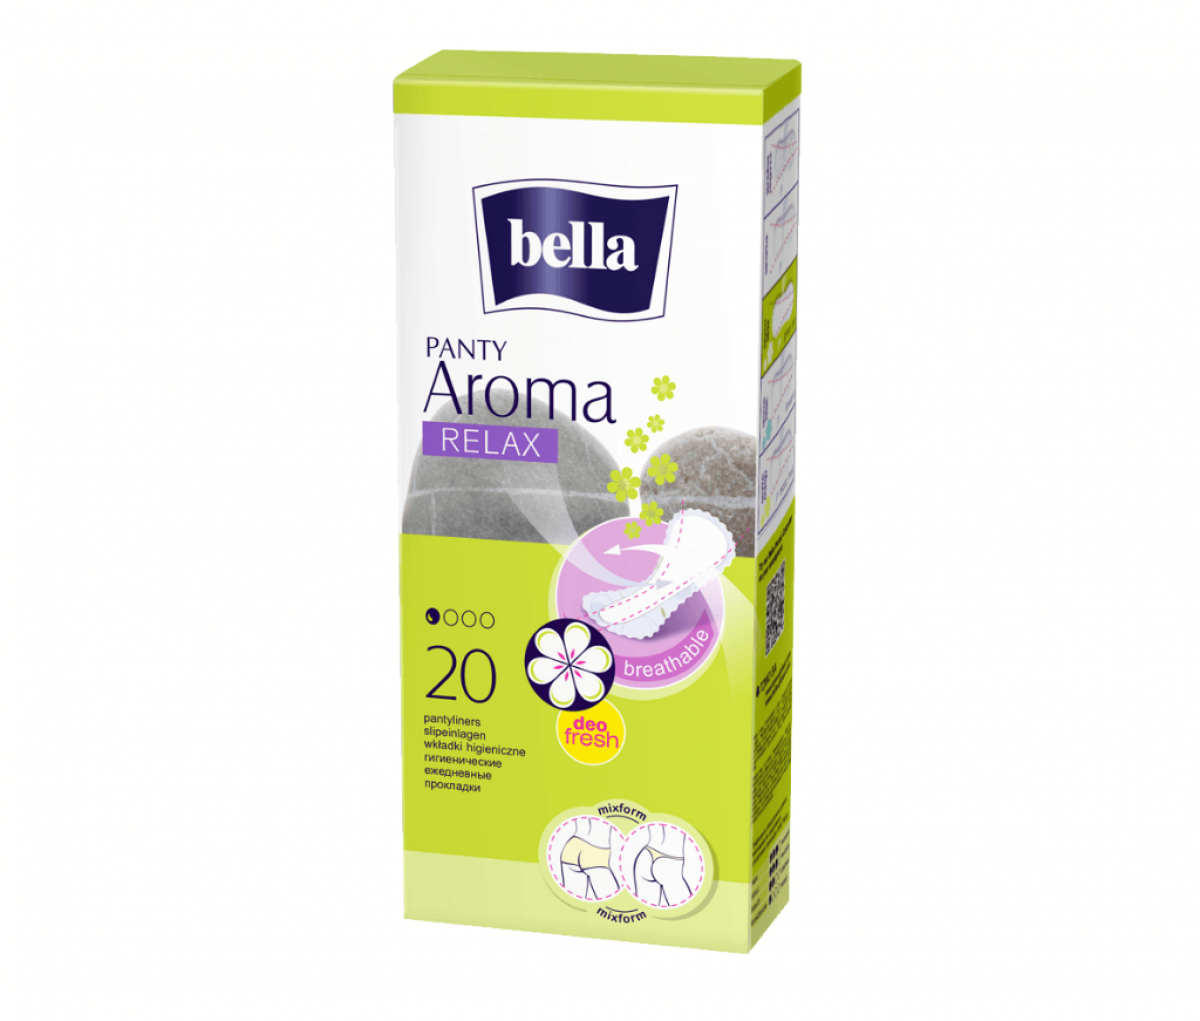 TZMO Bella Pantyliners Panty Aroma Relax a20